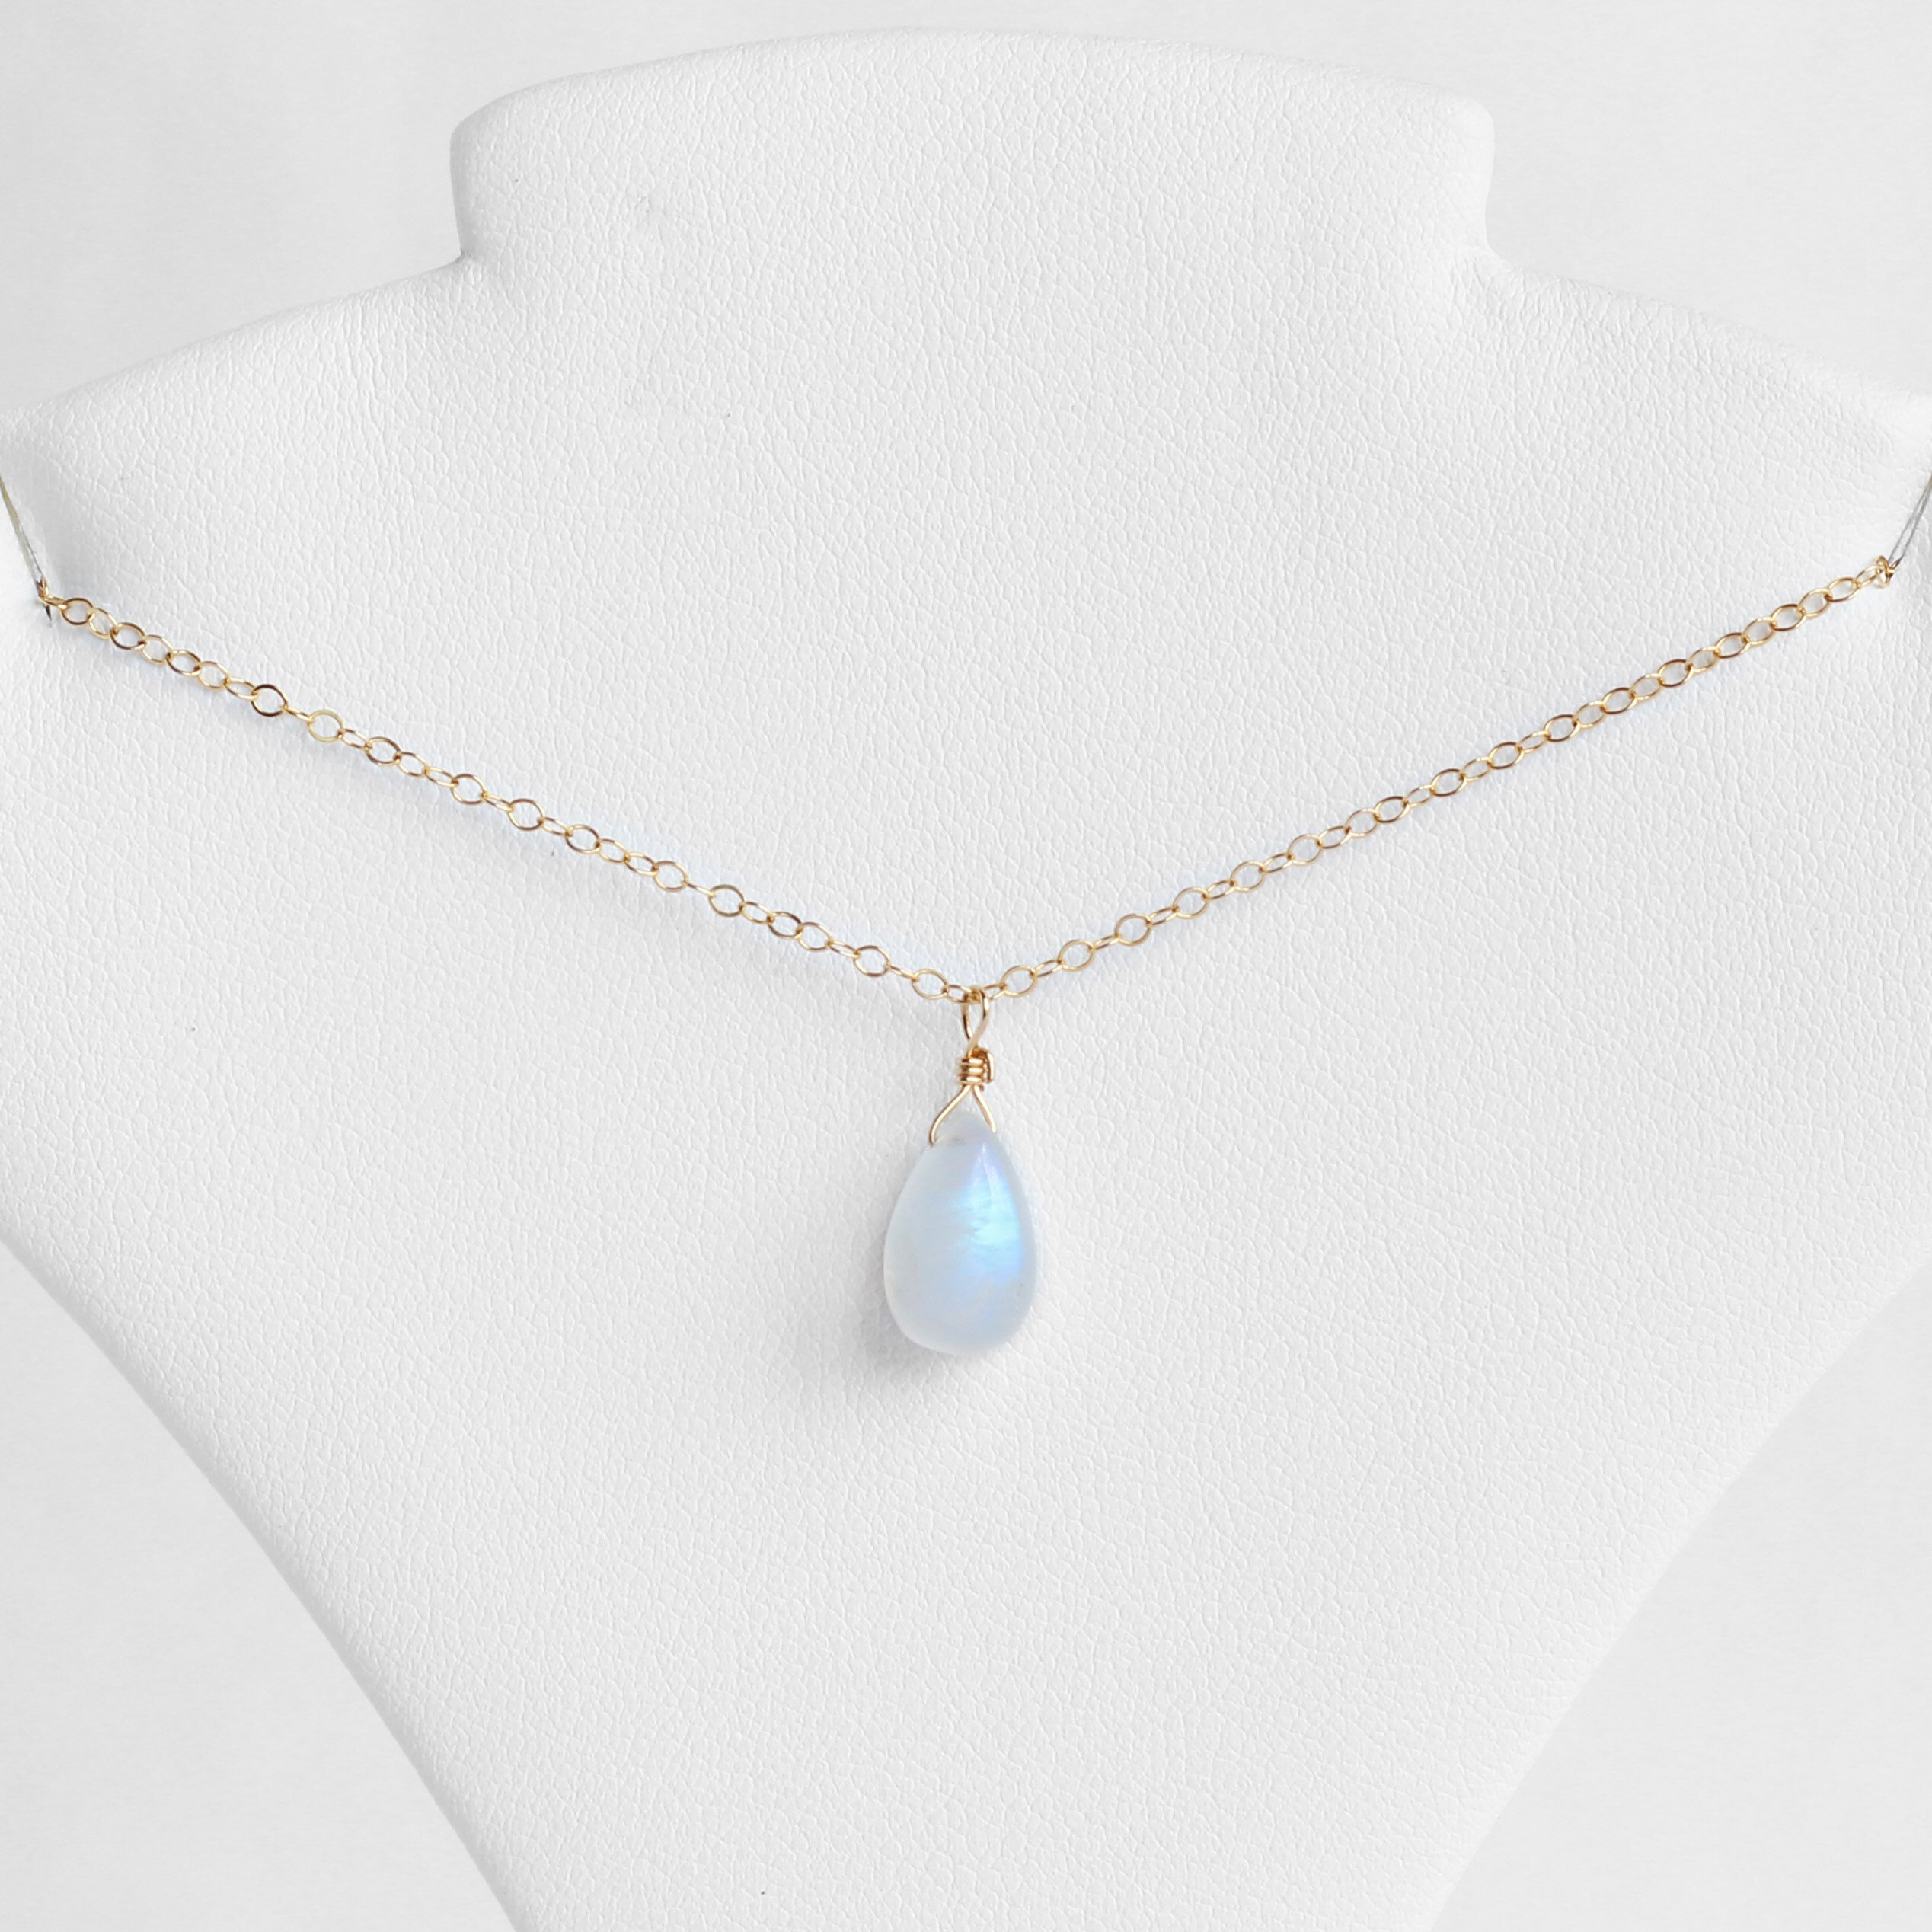 June Birthstone, Moonstone Necklace, June Birthday Gift, June Birthstone Necklace, June Necklace, Rainbow Moonstone Necklace, Gifts For Her Intended For 2019 Grey Moonstone June Droplet Pendant Necklaces (Gallery 9 of 25)